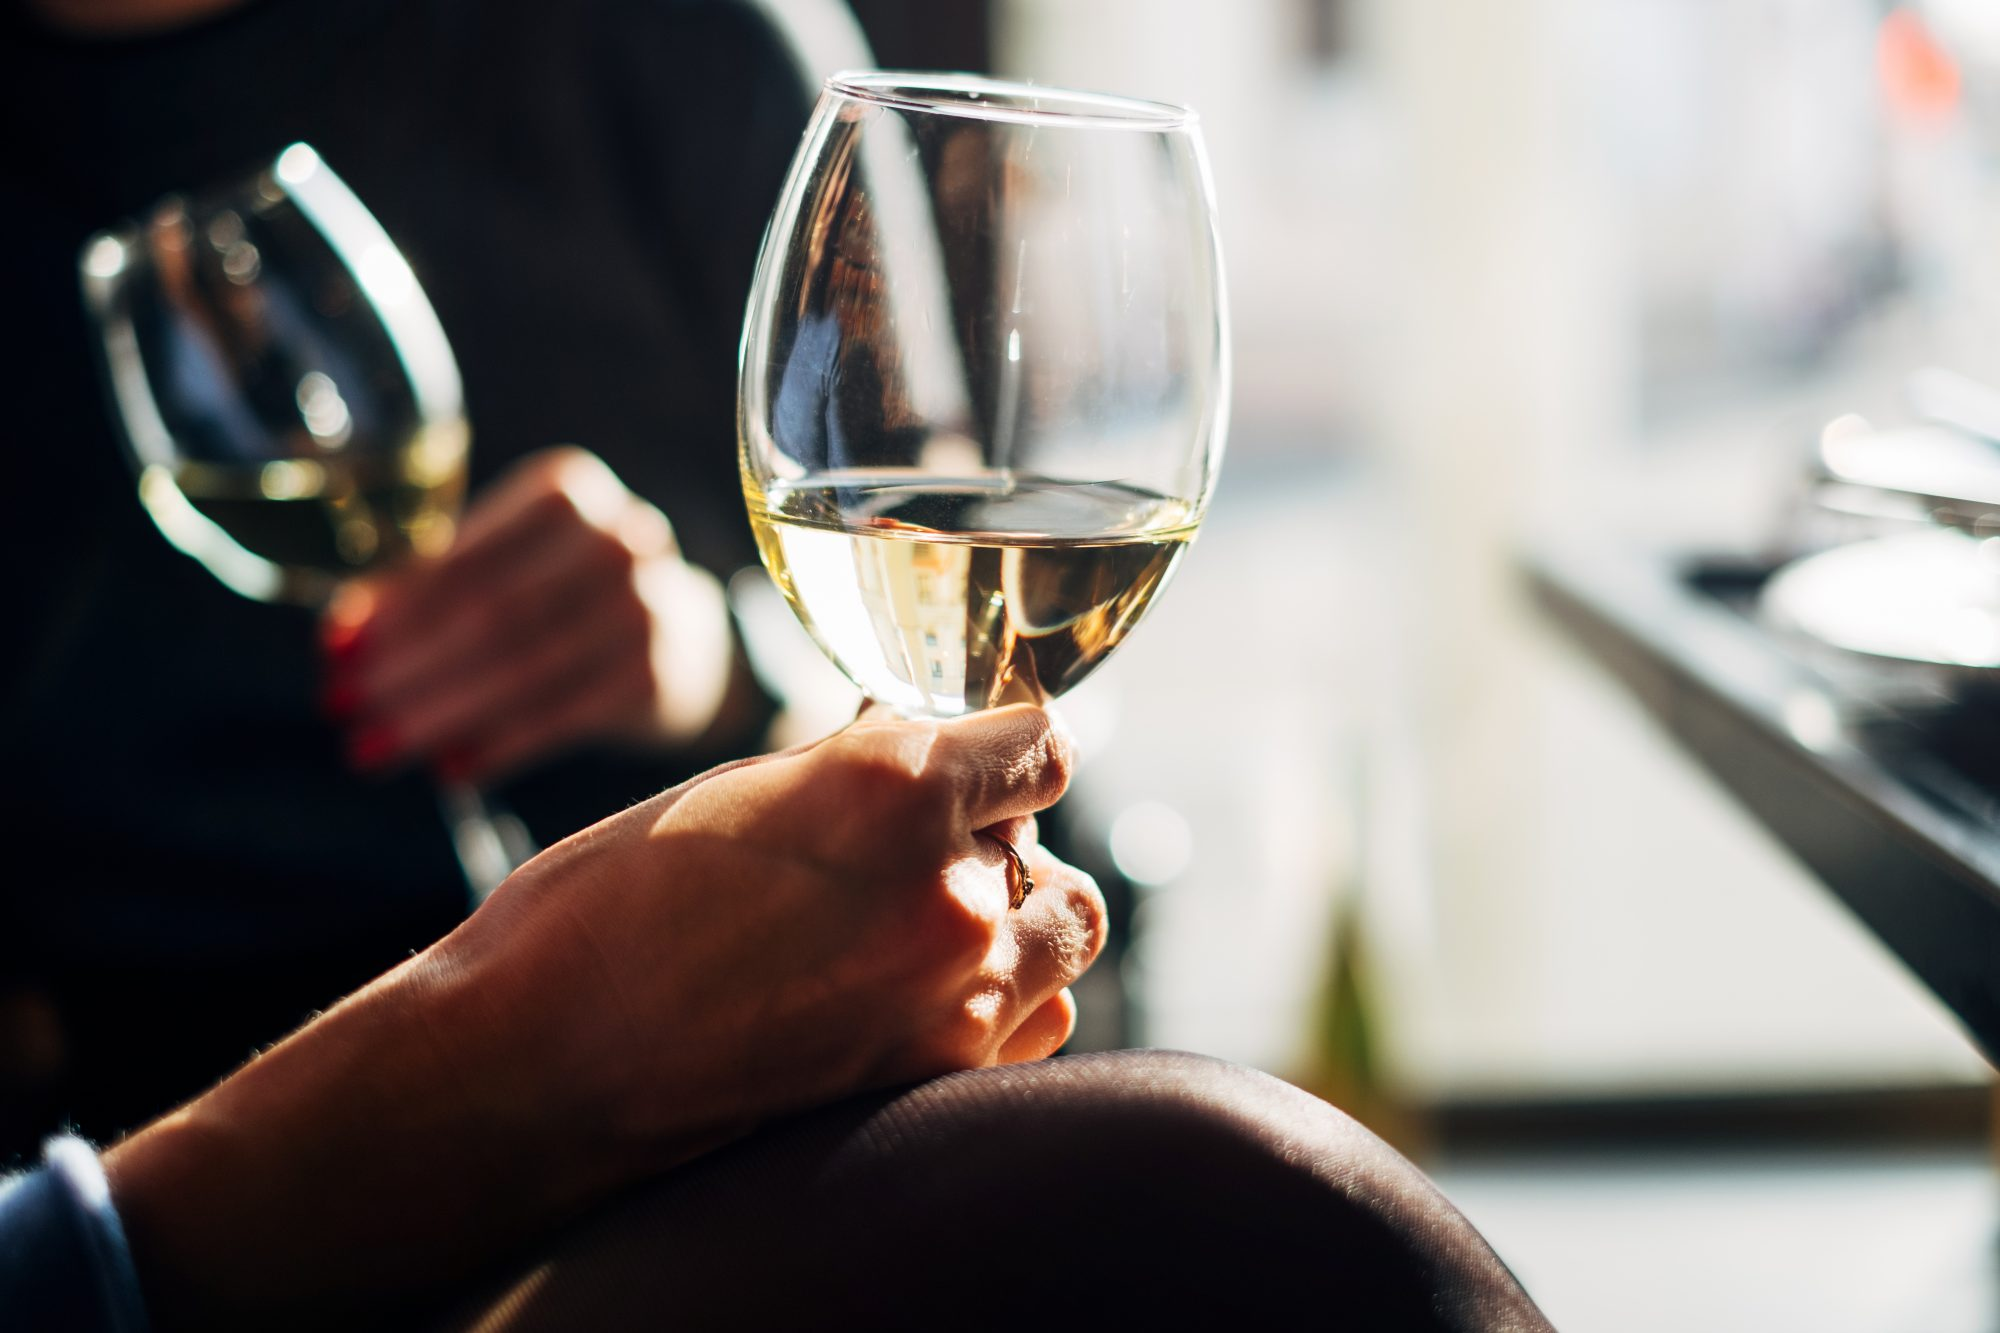 woman sitting at table drinking white wine